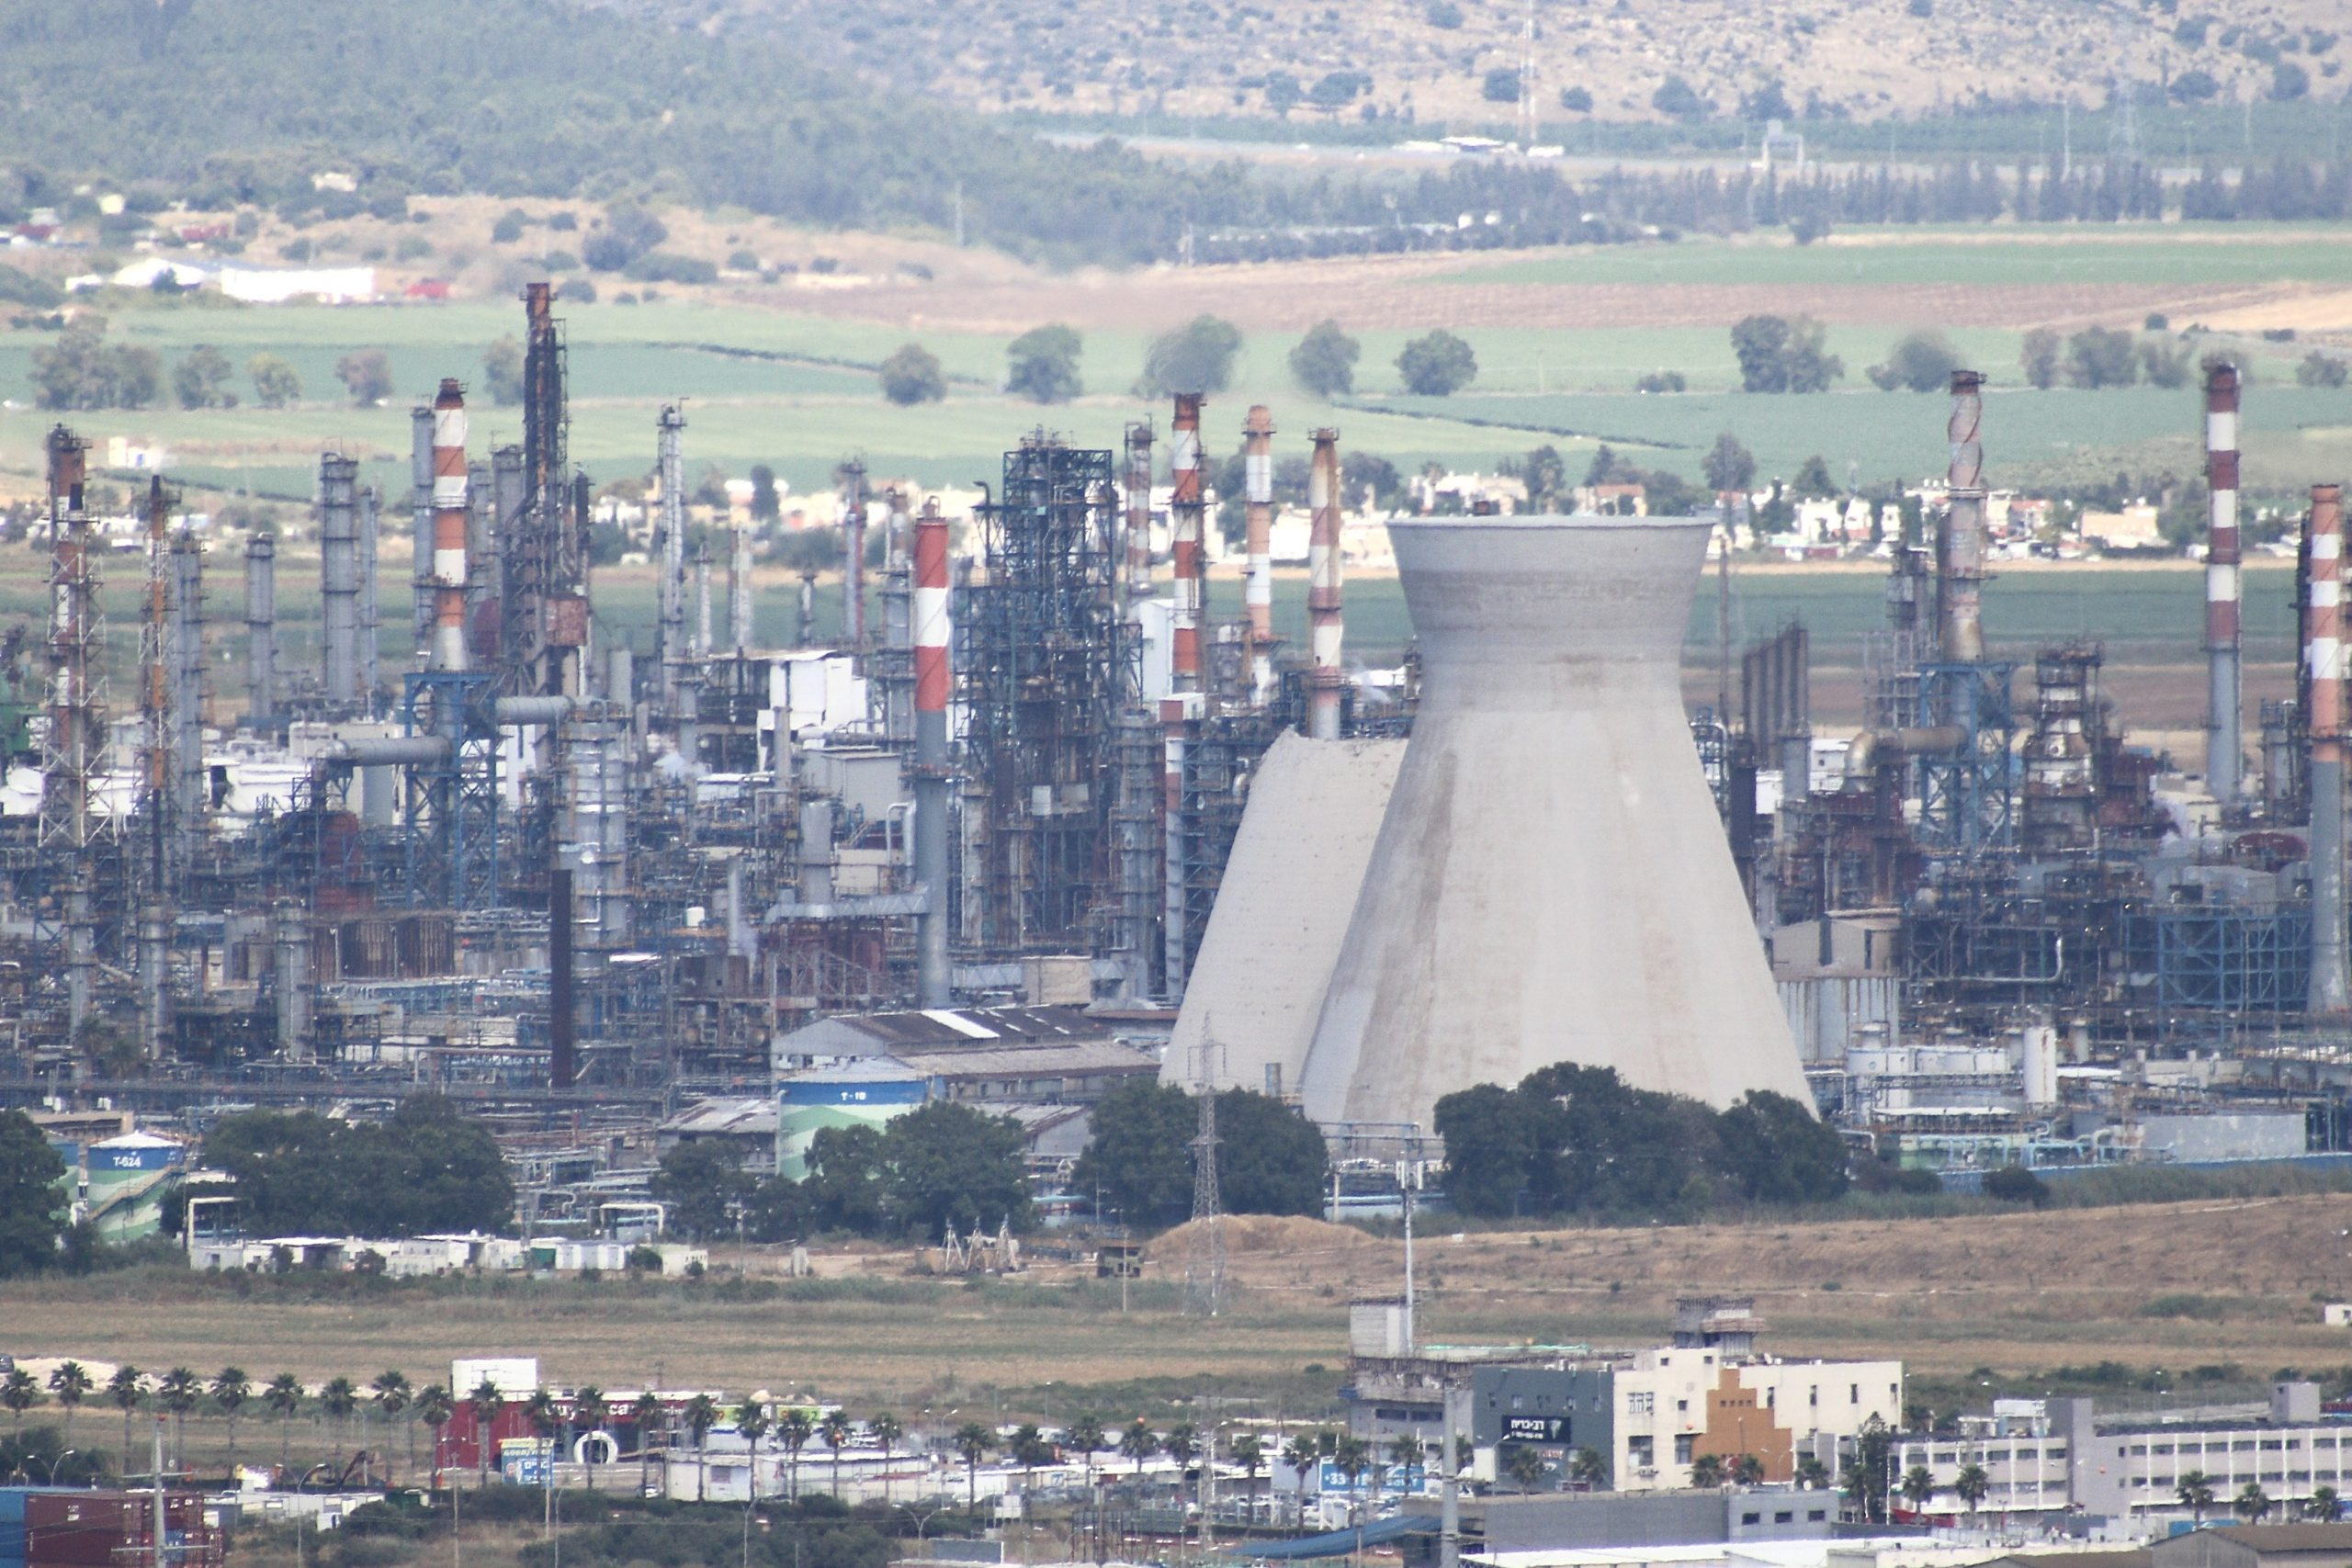 Collapse of cooling tower at Haifa Refinery (Bazan Group)